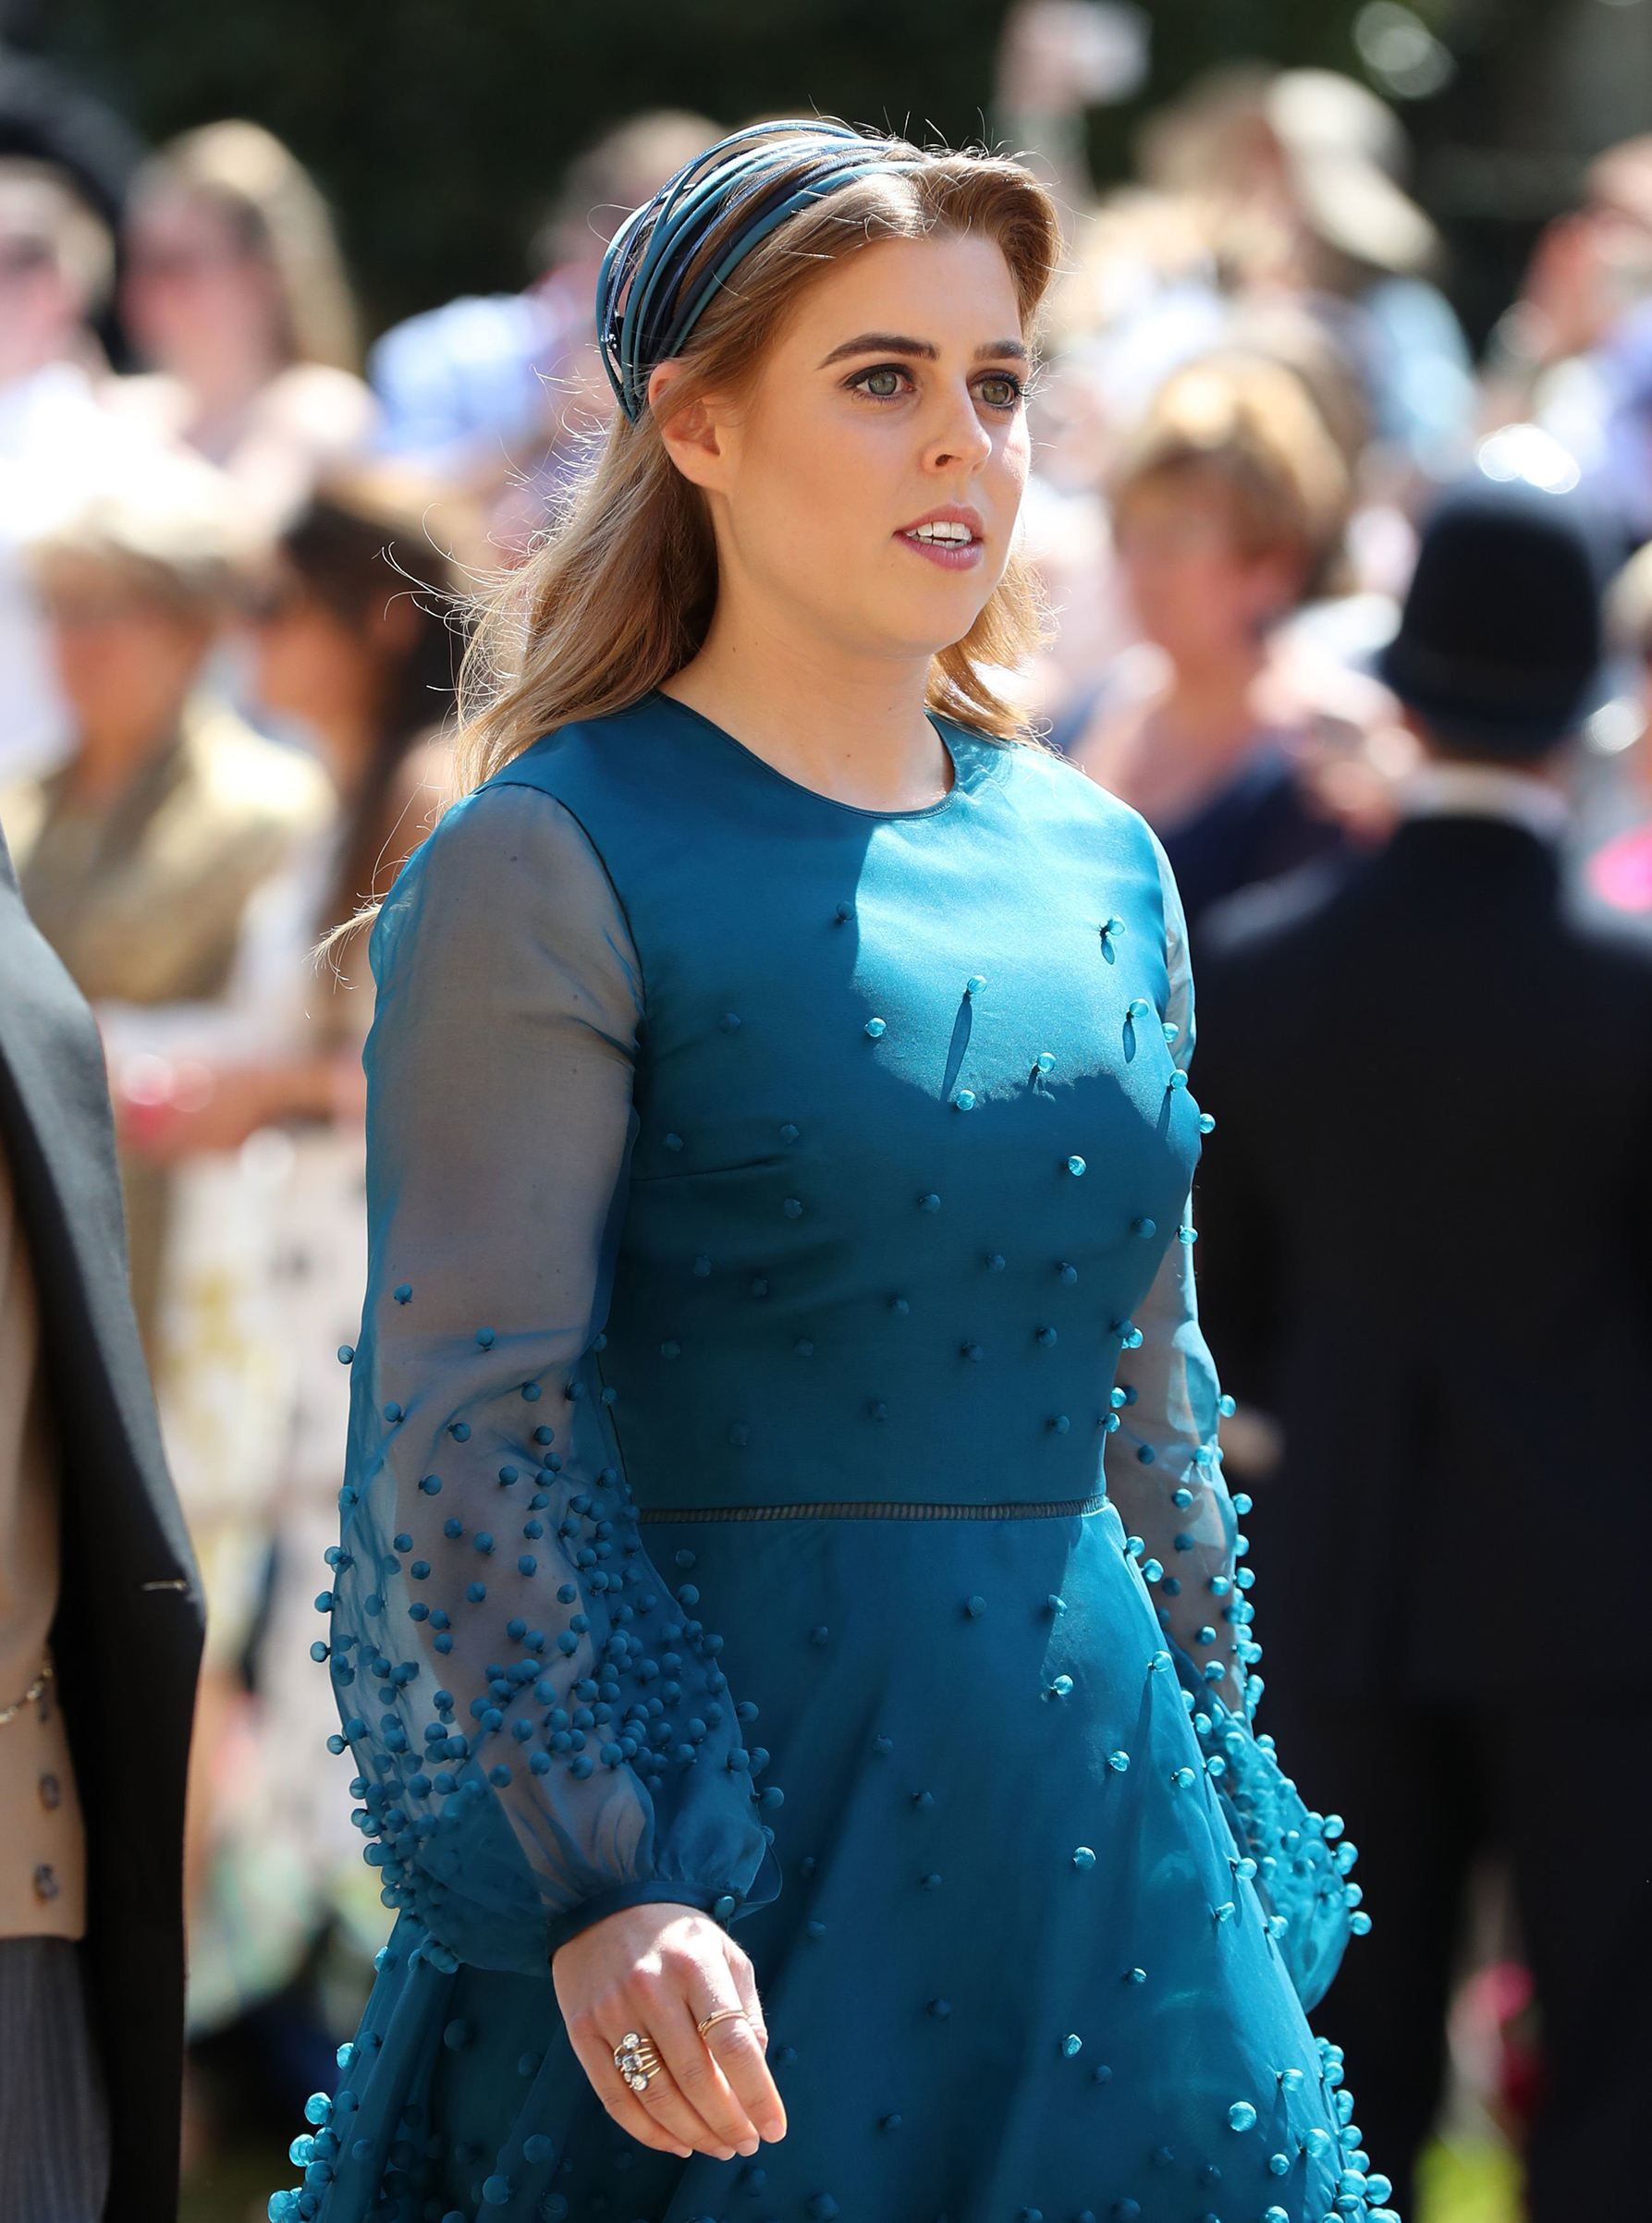 Princess Beatrice arrives at St George's Chapel at Windsor Castle before the wedding of Prince Harry to Meghan Markle on May 19, 2018.